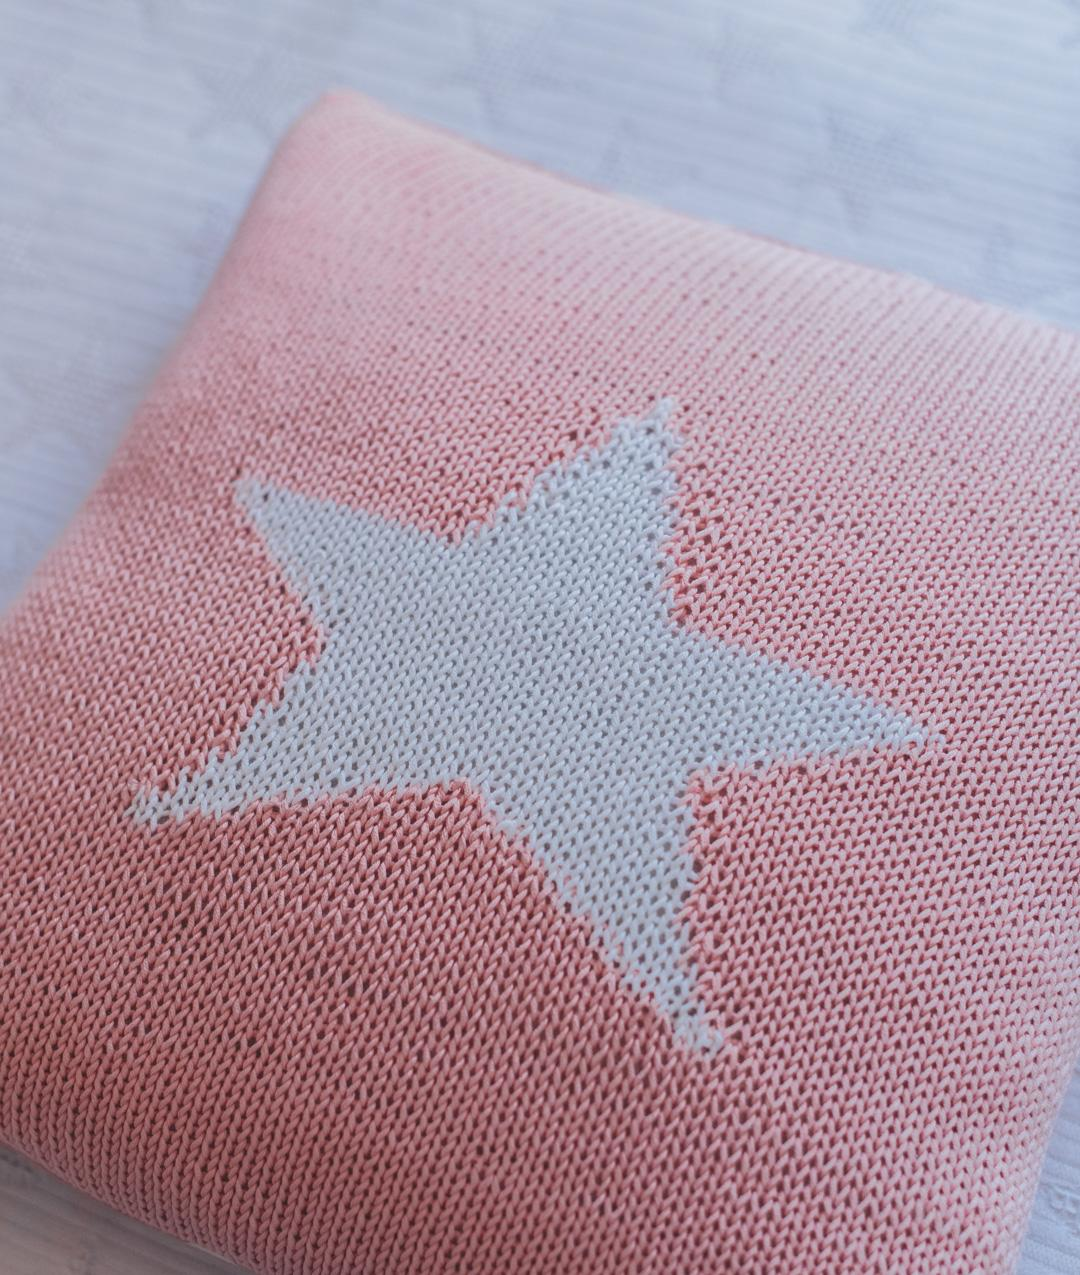 Home Decor Baby Collection - HomewareHome Decor Baby Collection - Homeware - MY LITTLE STAR CUSHION - 1